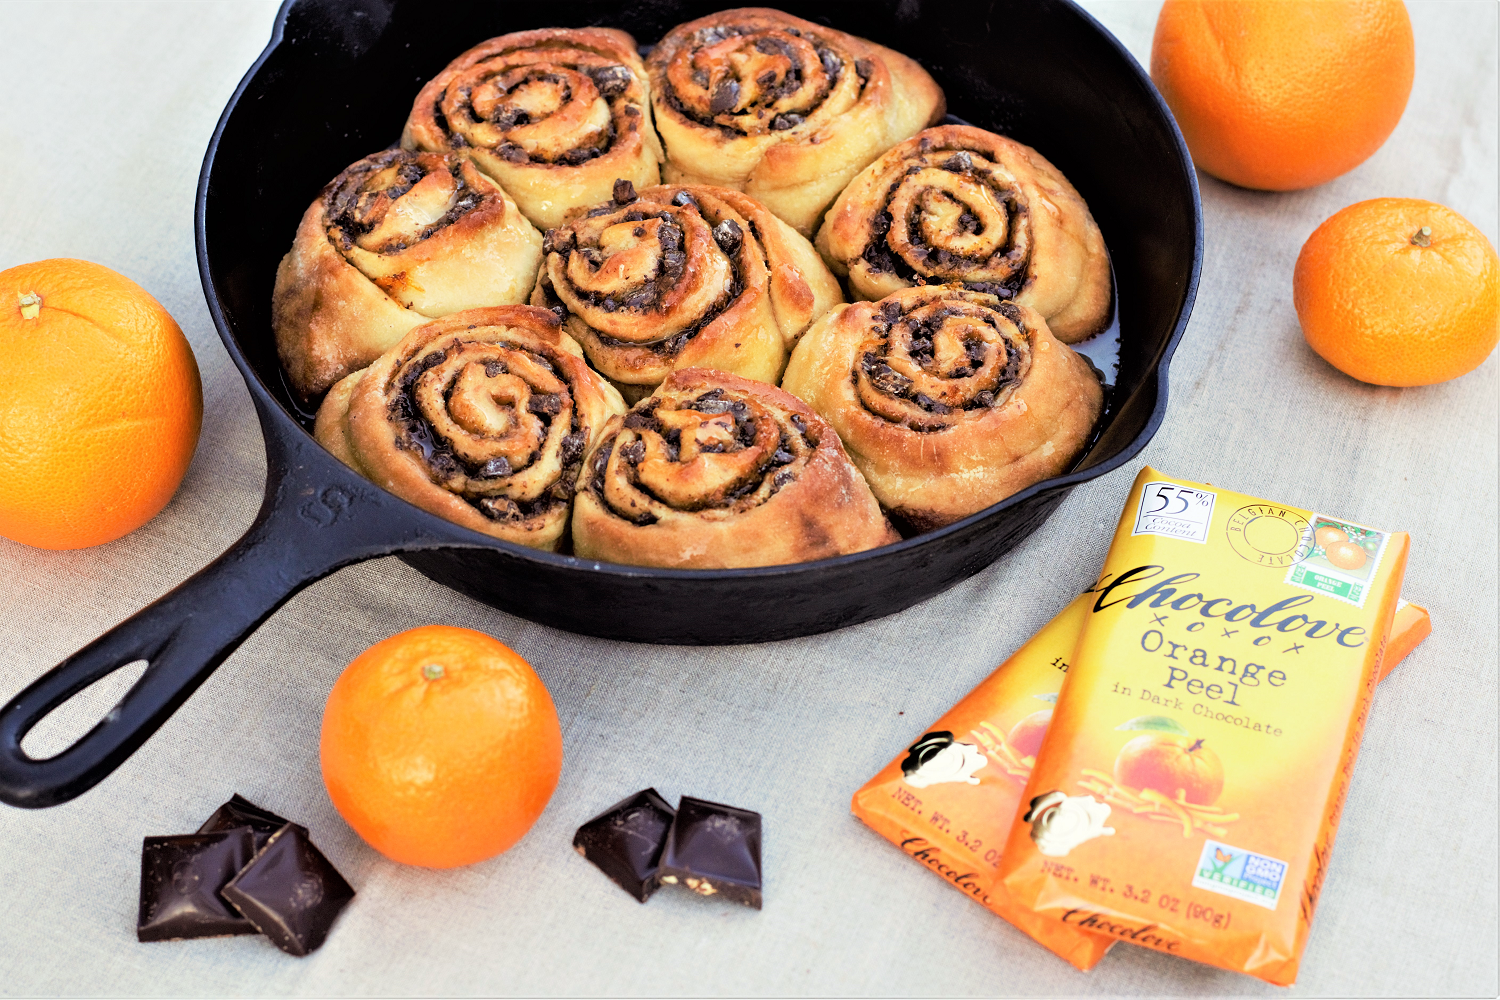 Warm up the oven on cozy, chilly mornings and start your day with soft dark chocolate, orange, & cardamom rolls with a sweet orange glaze.